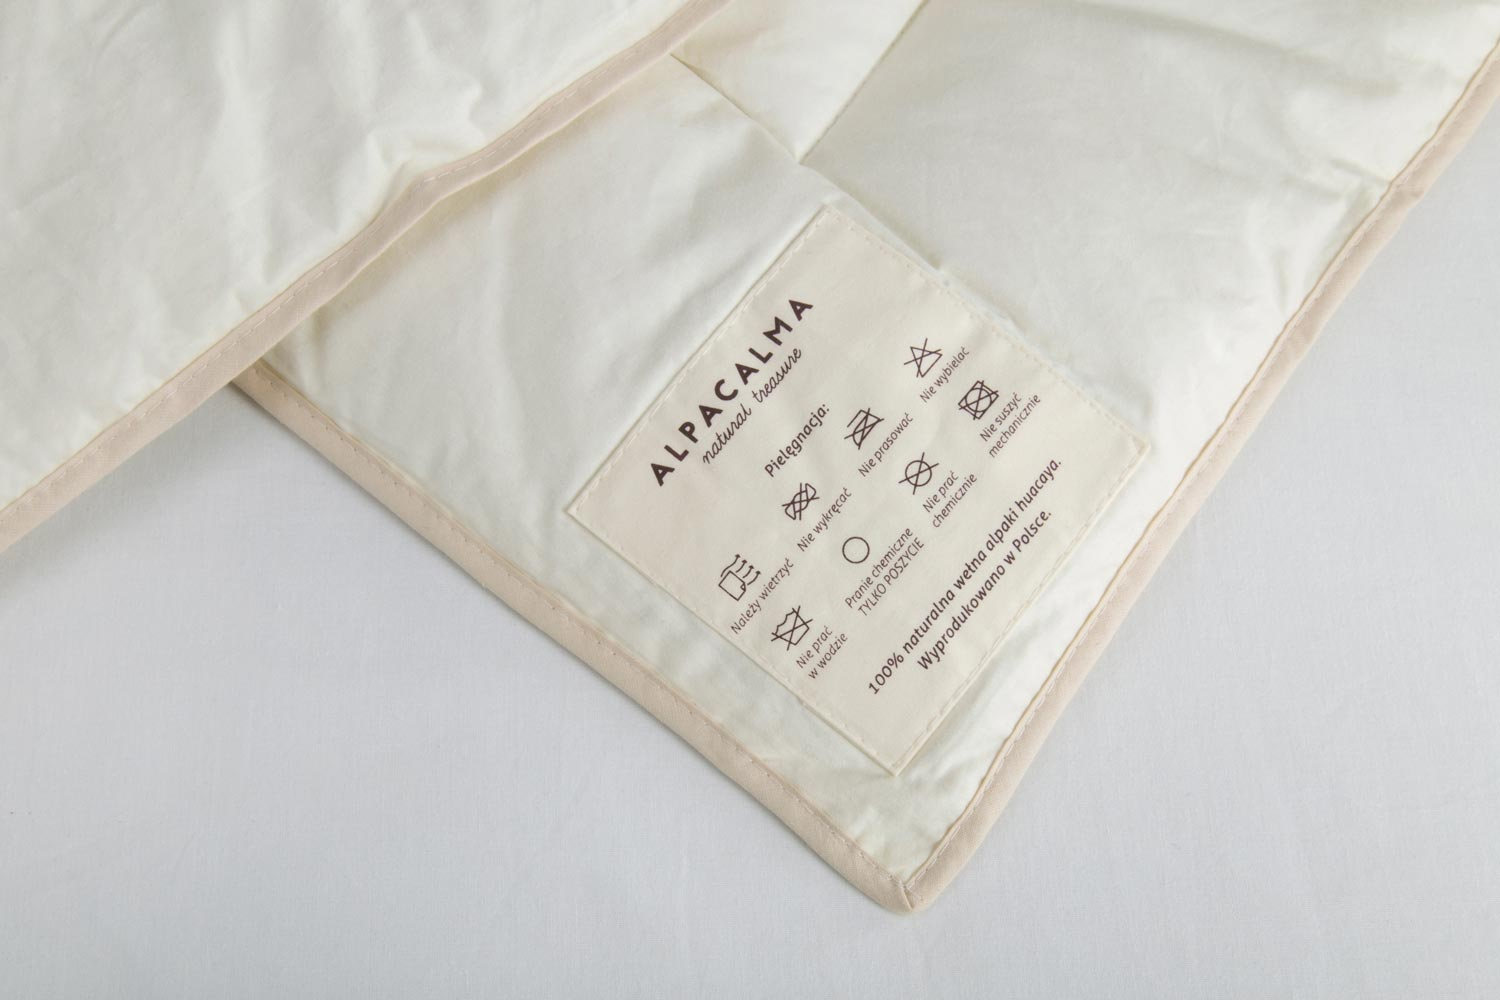 Alpacalma products